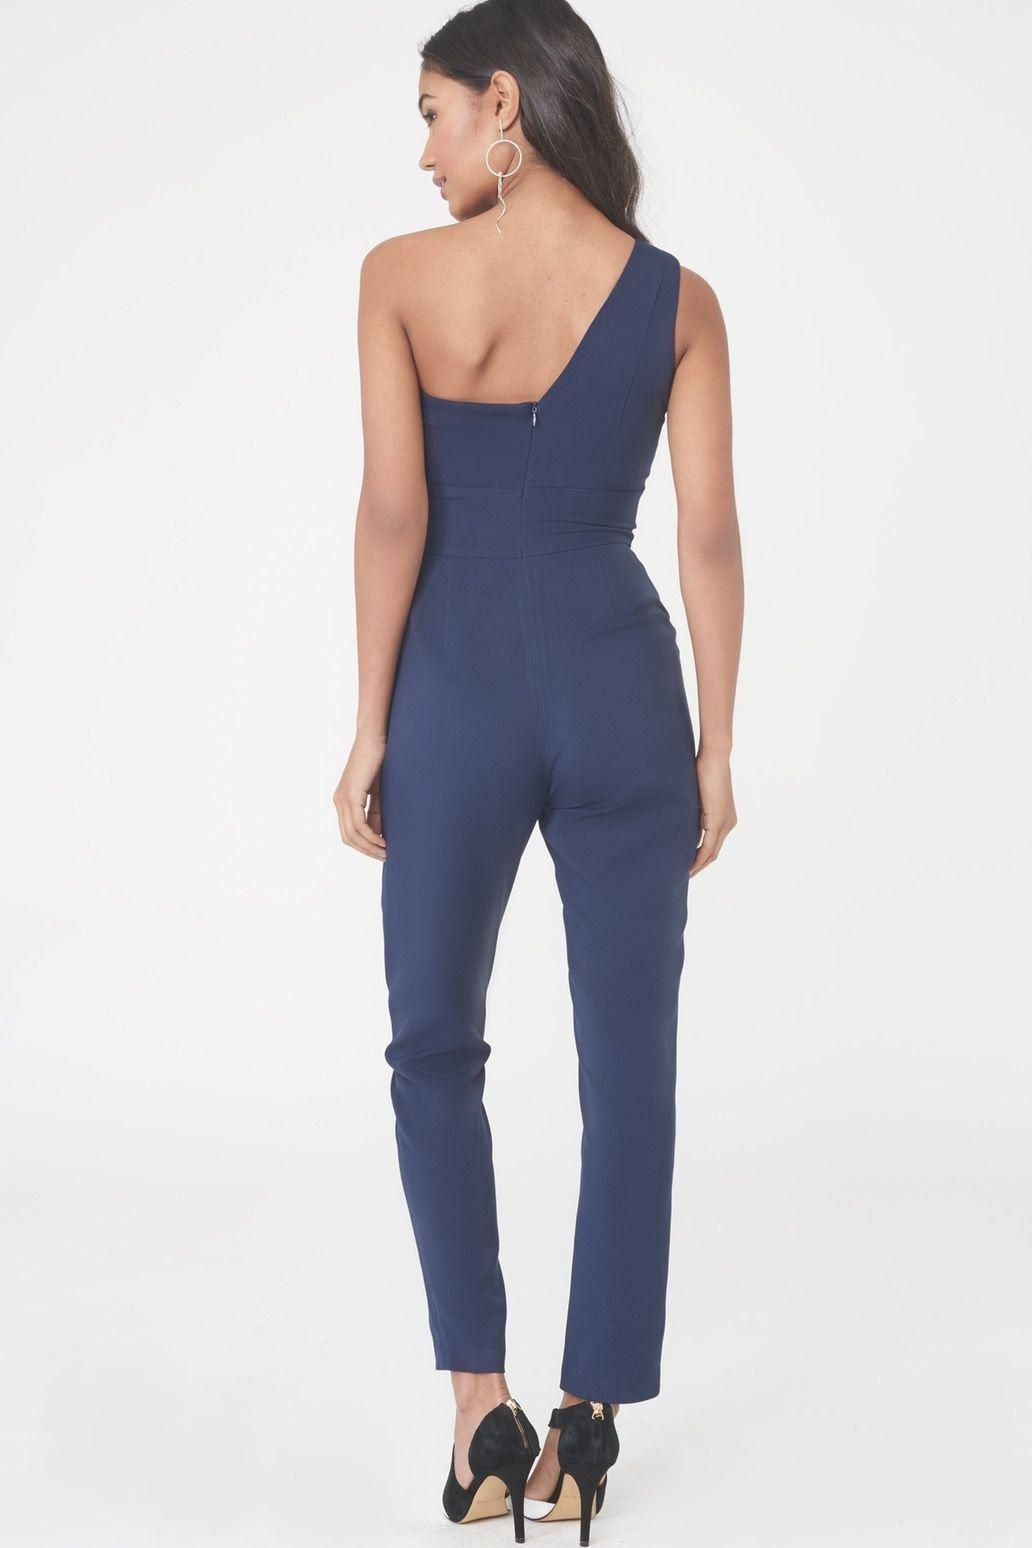 1a25401275a Lyst - Lavish Alice One Shoulder Bodice Jumpsuit in Blue - Save 49%